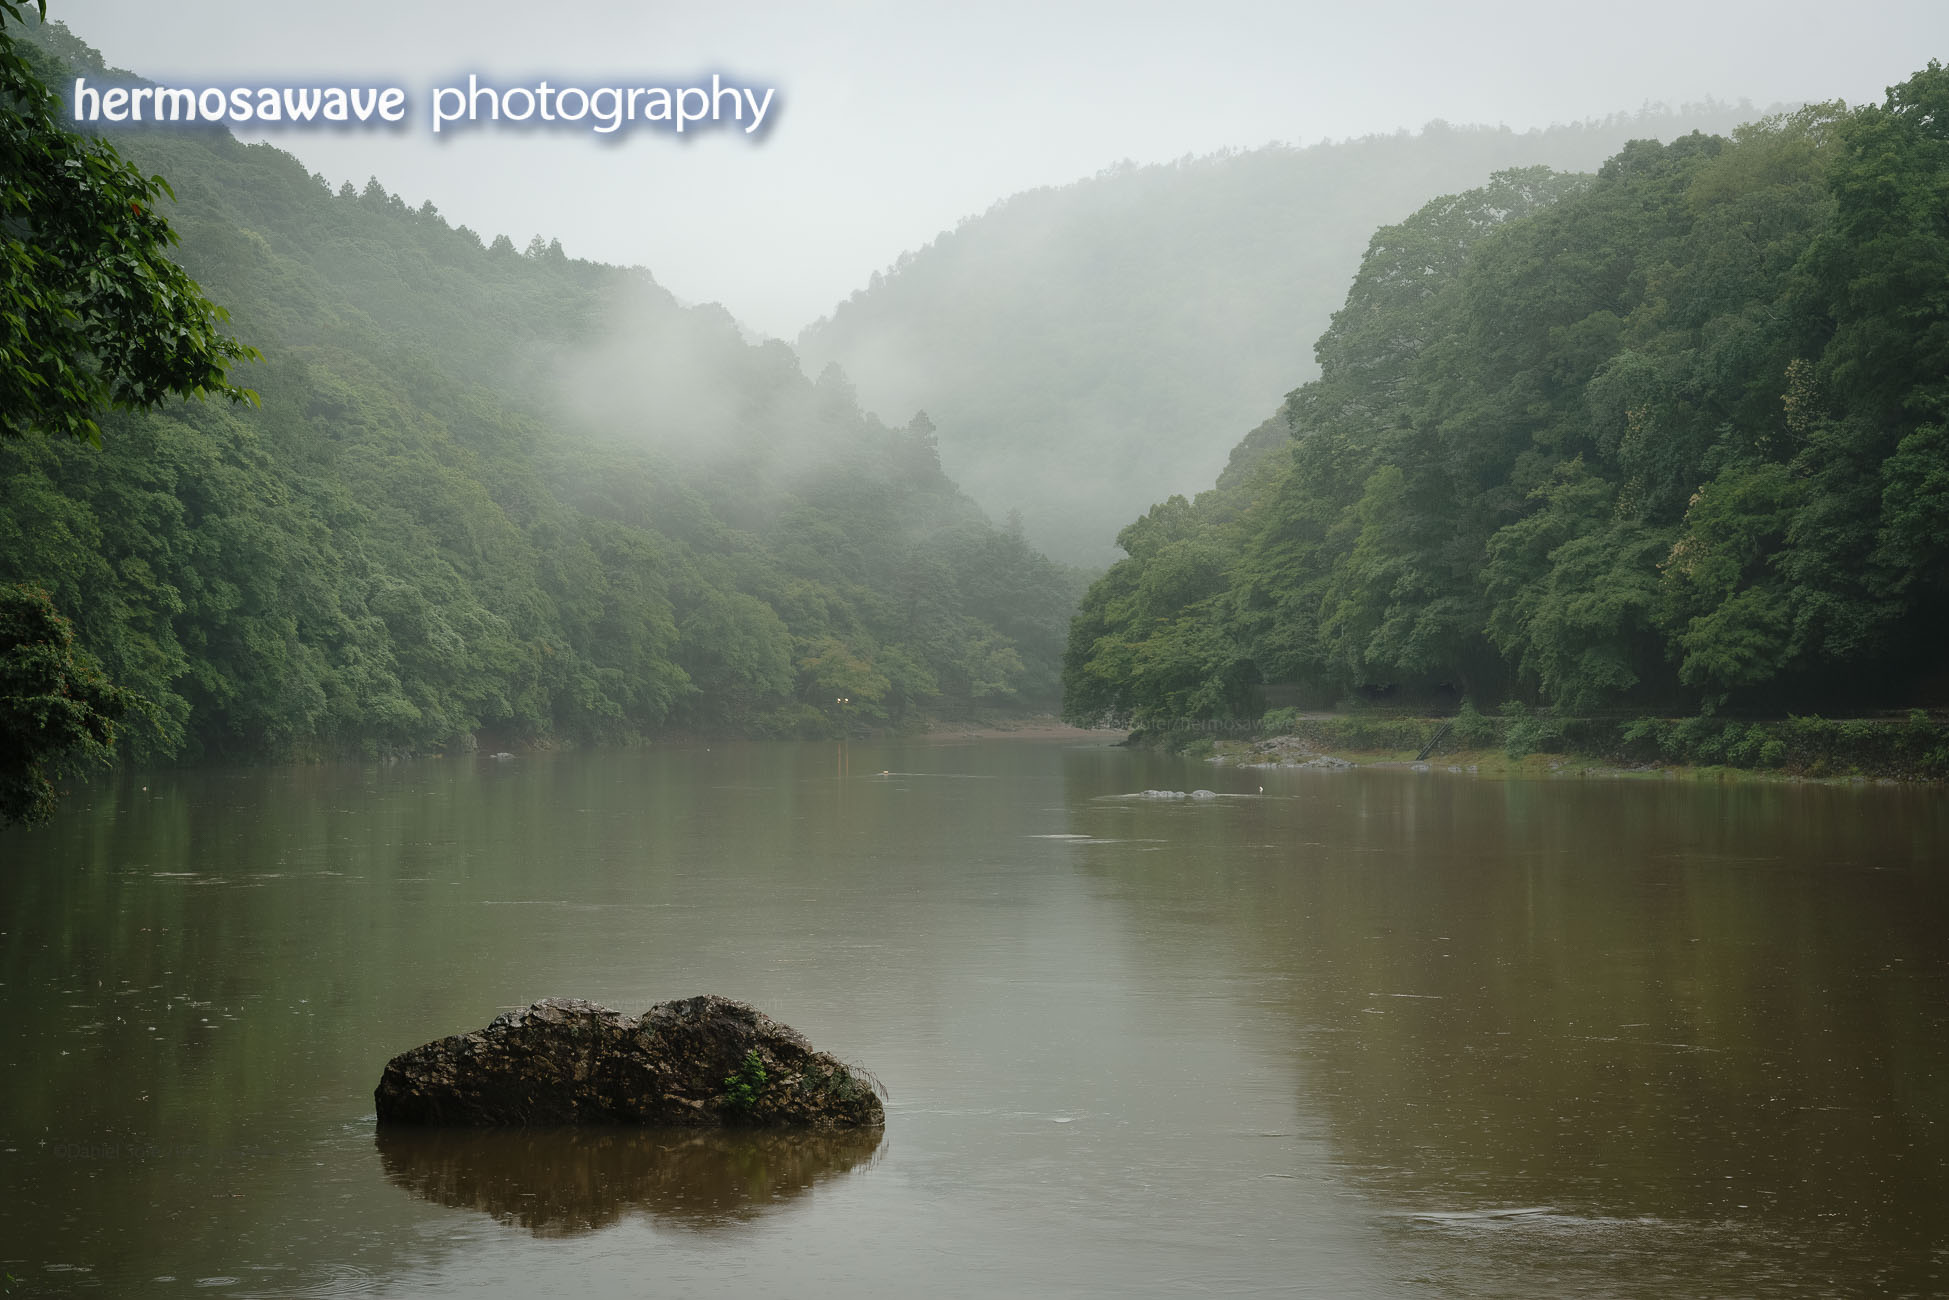 Oi River in the Mist・ 霧の中の大堰川